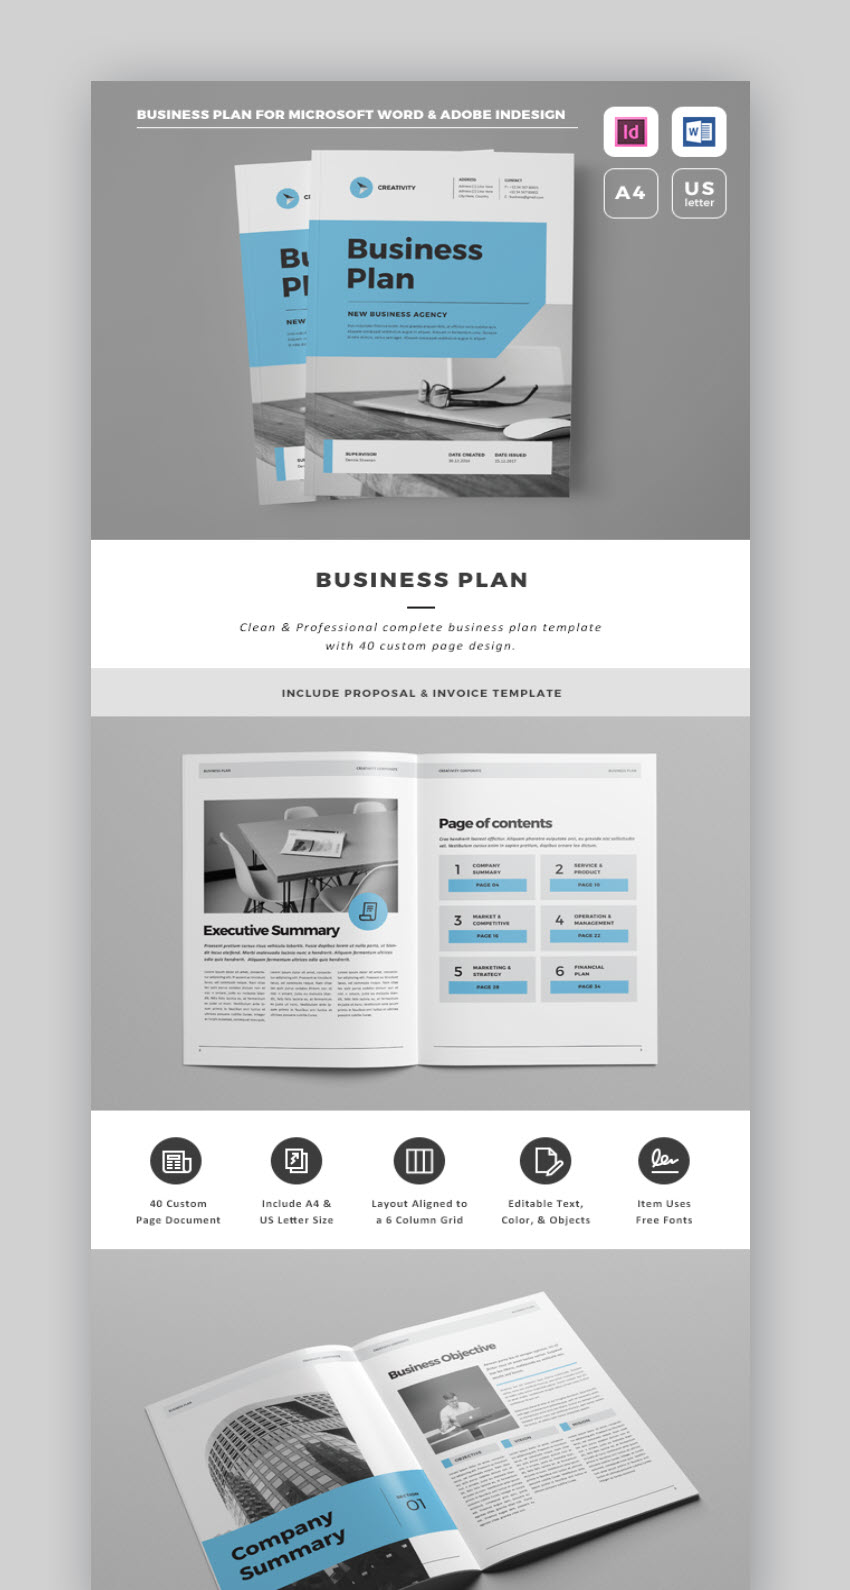 18 professional business project proposal templates for 2018 this professional business plan template includes a first class business proposal template youll get a 40 page indesign business template and a 32 page accmission Gallery